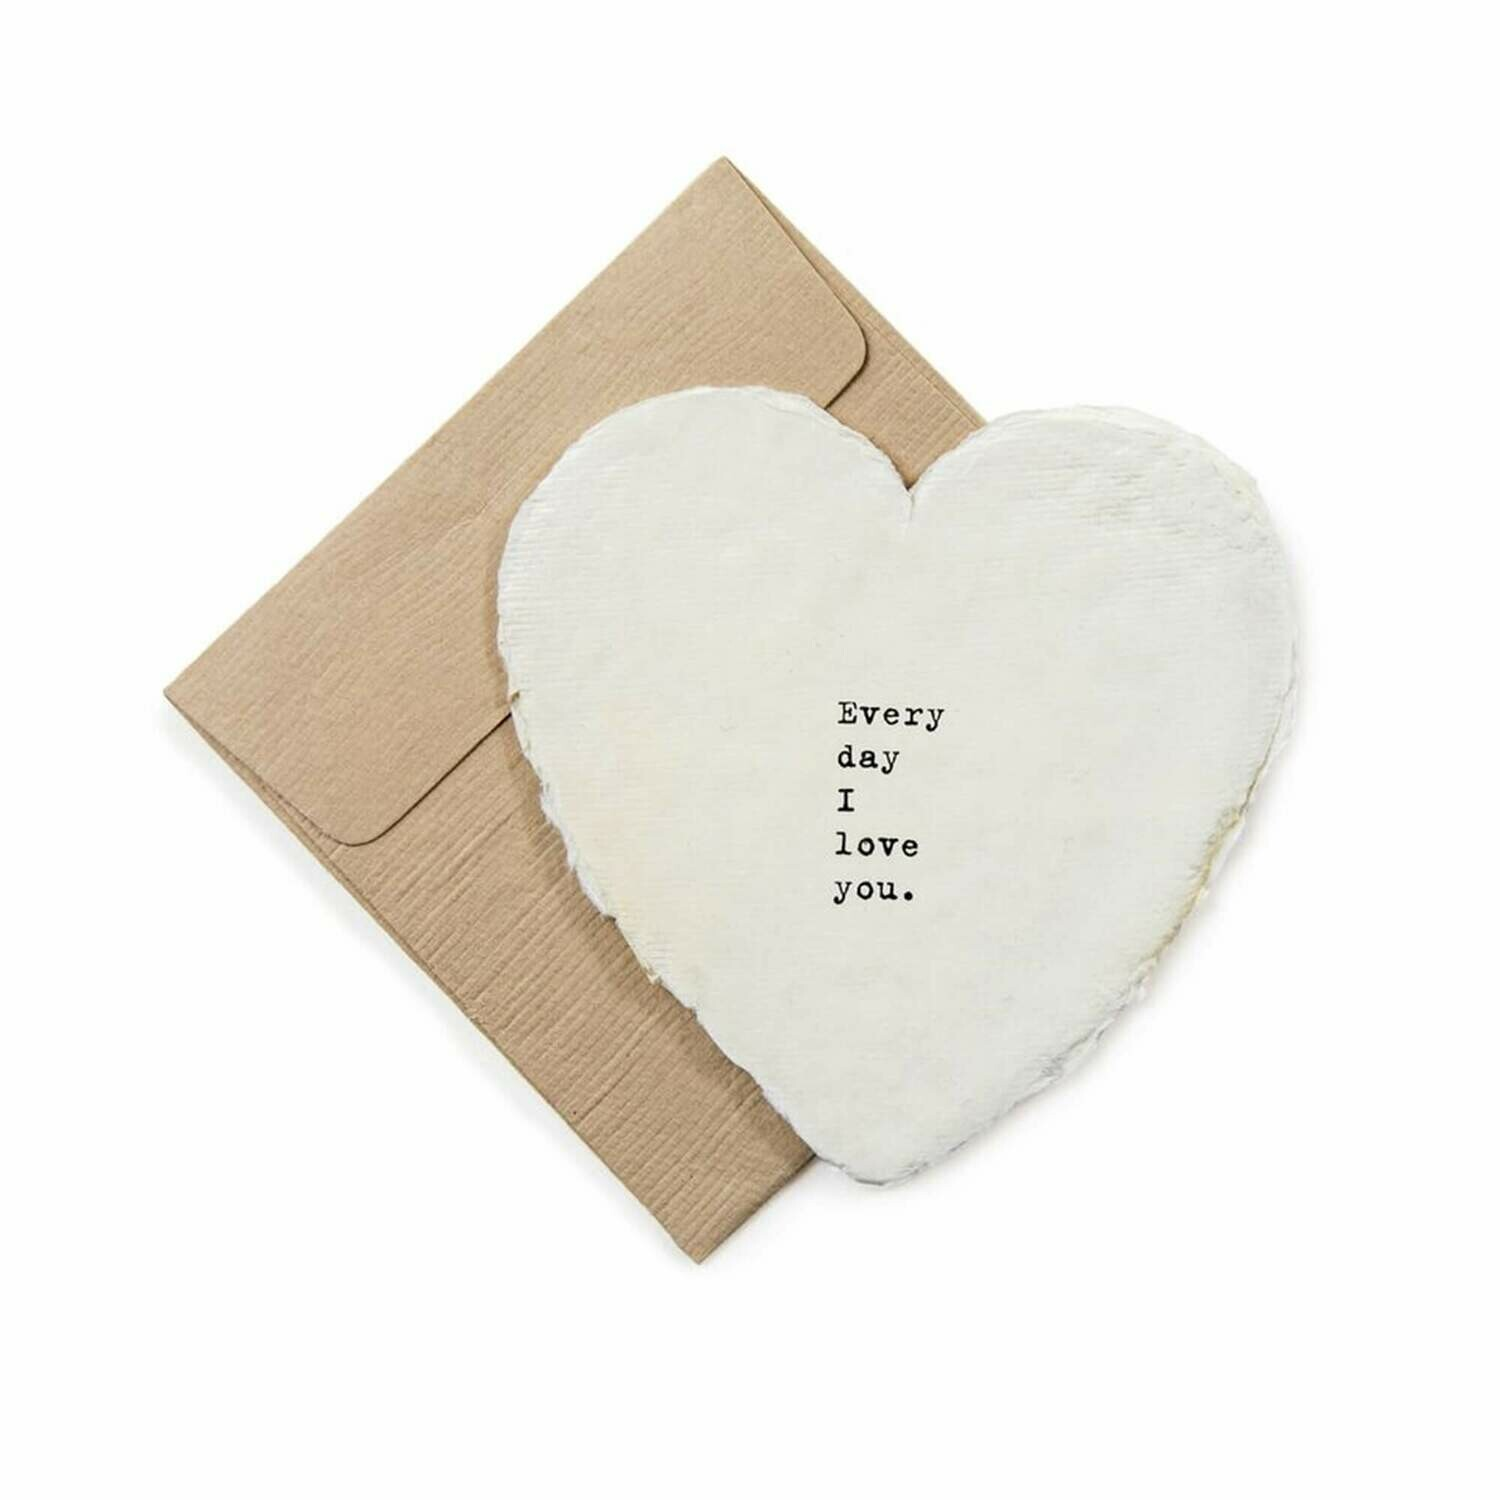 Mini Heart Shaped Card & Envelope-Every day I love you.